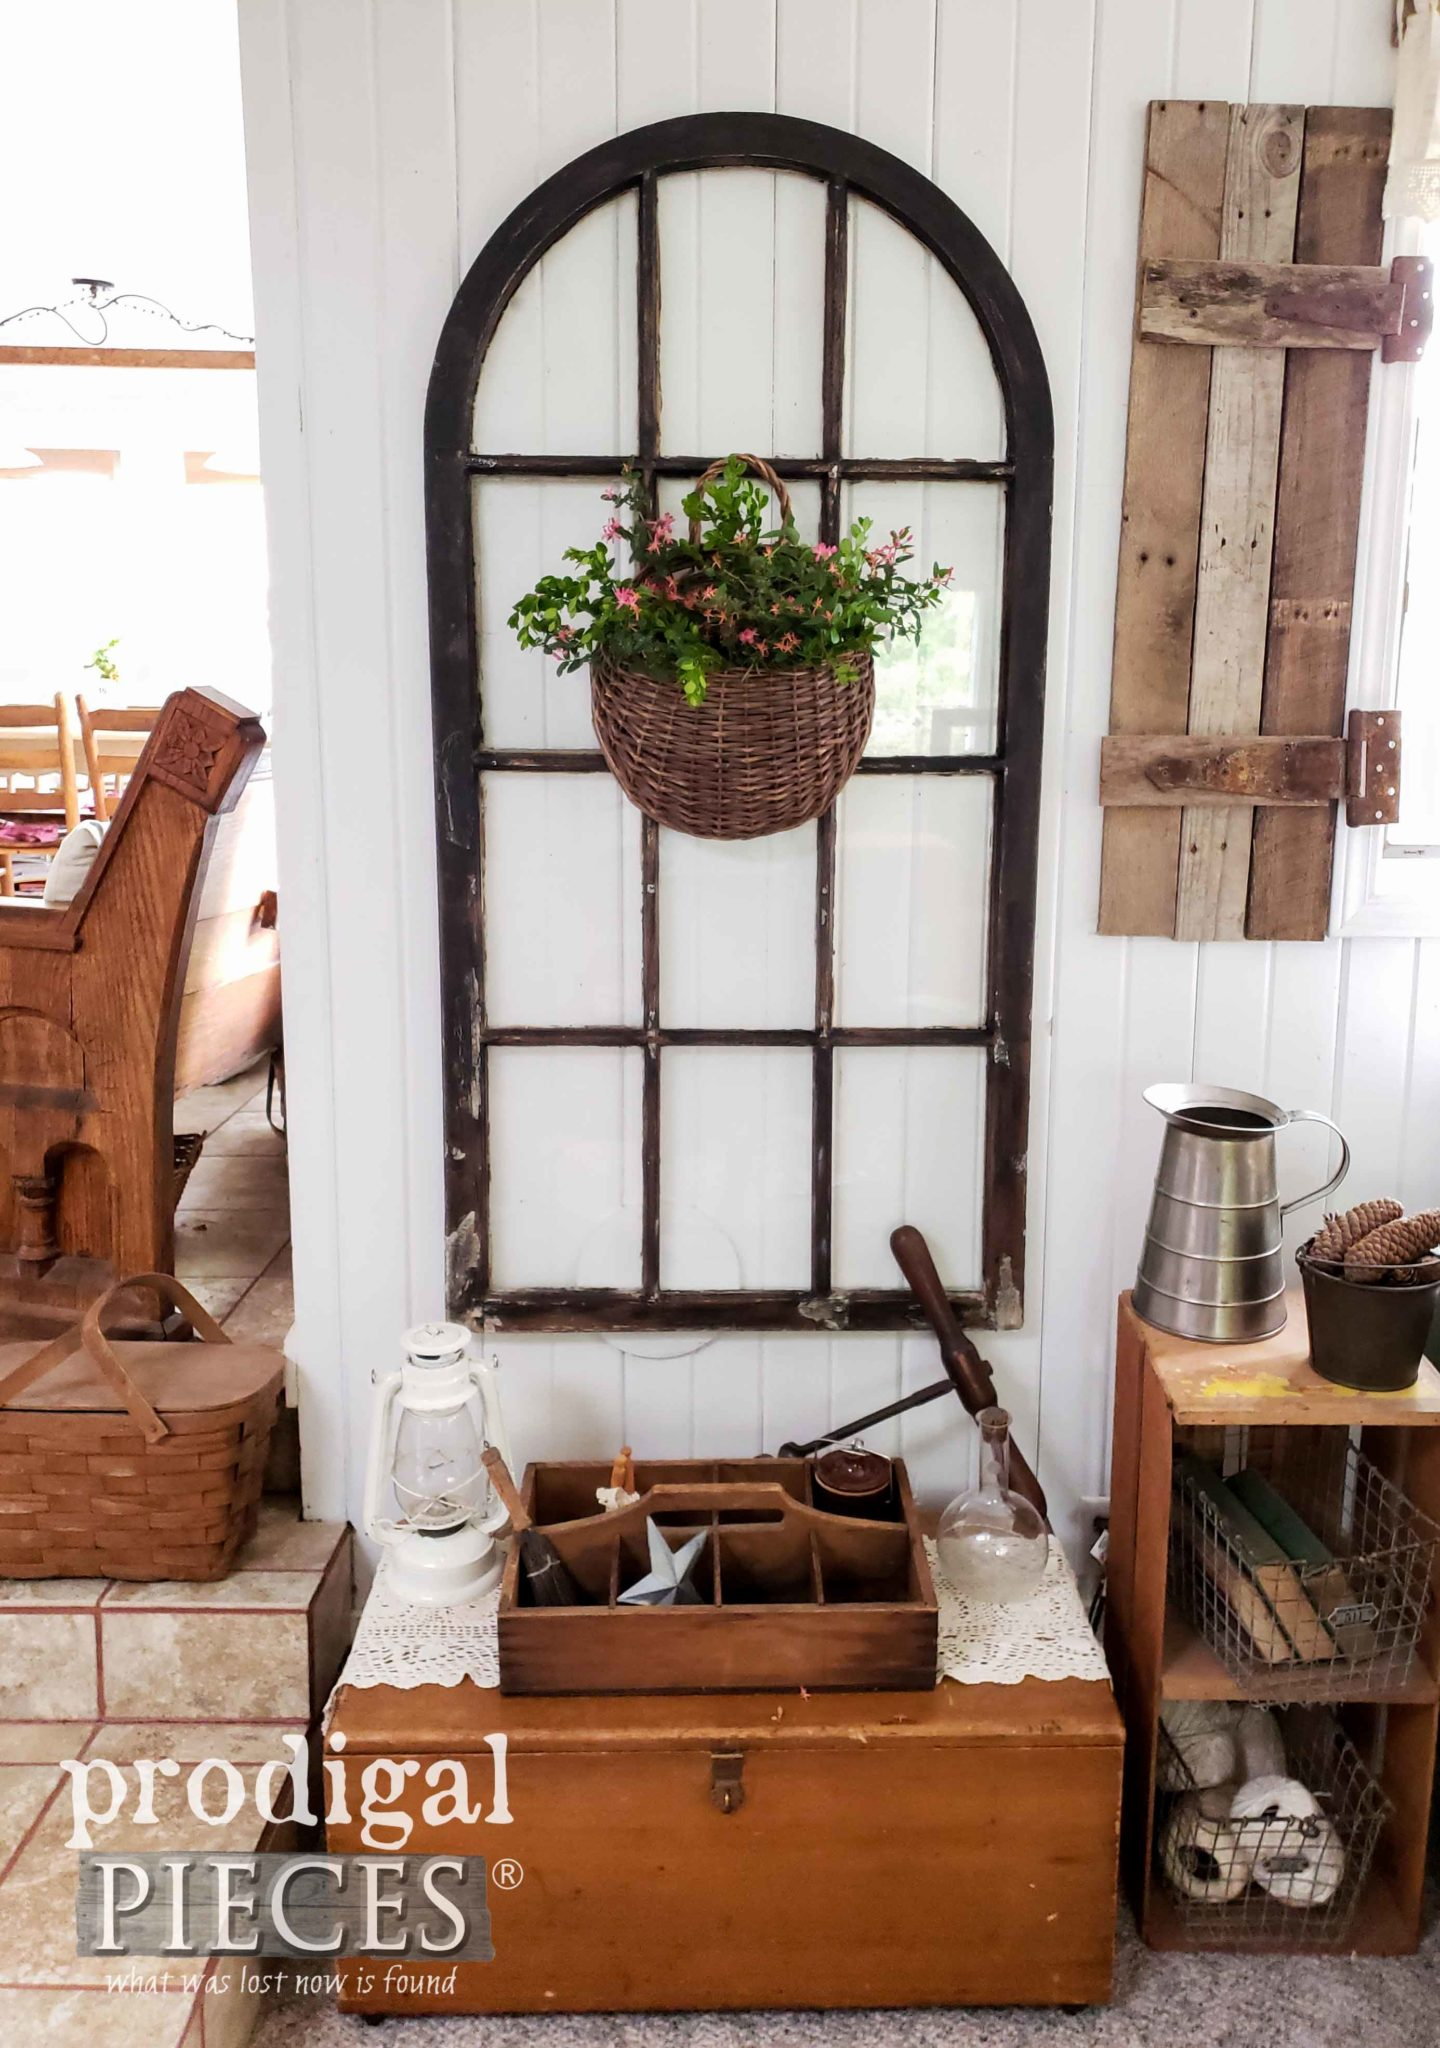 This antique window renovated with fresh flowers is a great farmhouse architectural piece.